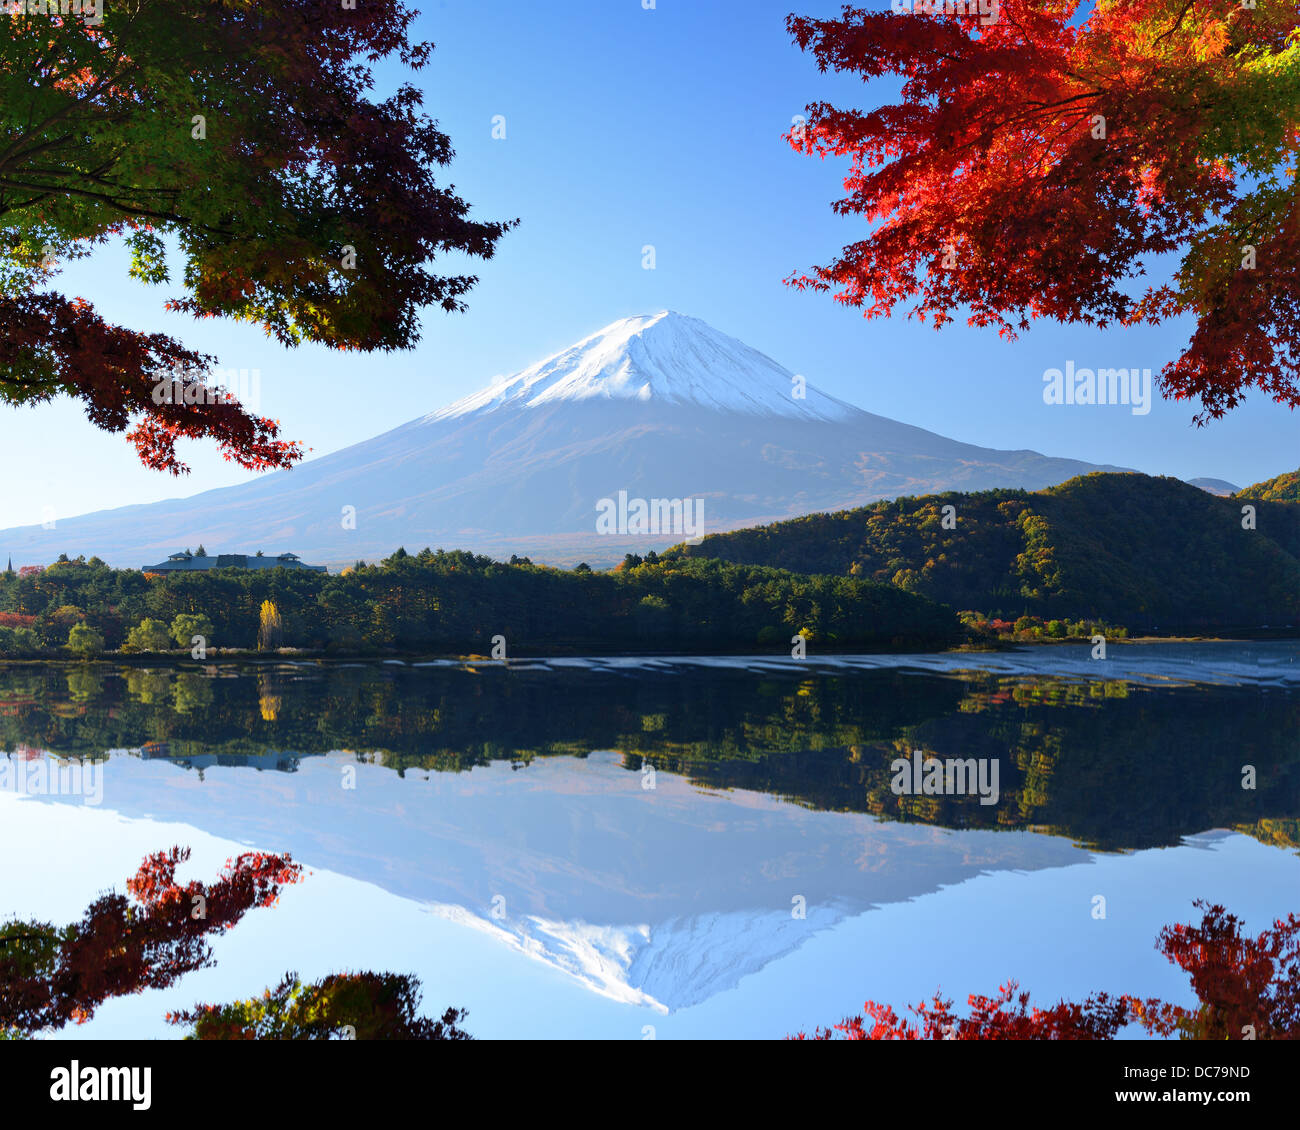 Mt. Fuji and autumn foliage at Lake Kawaguchi. - Stock Image